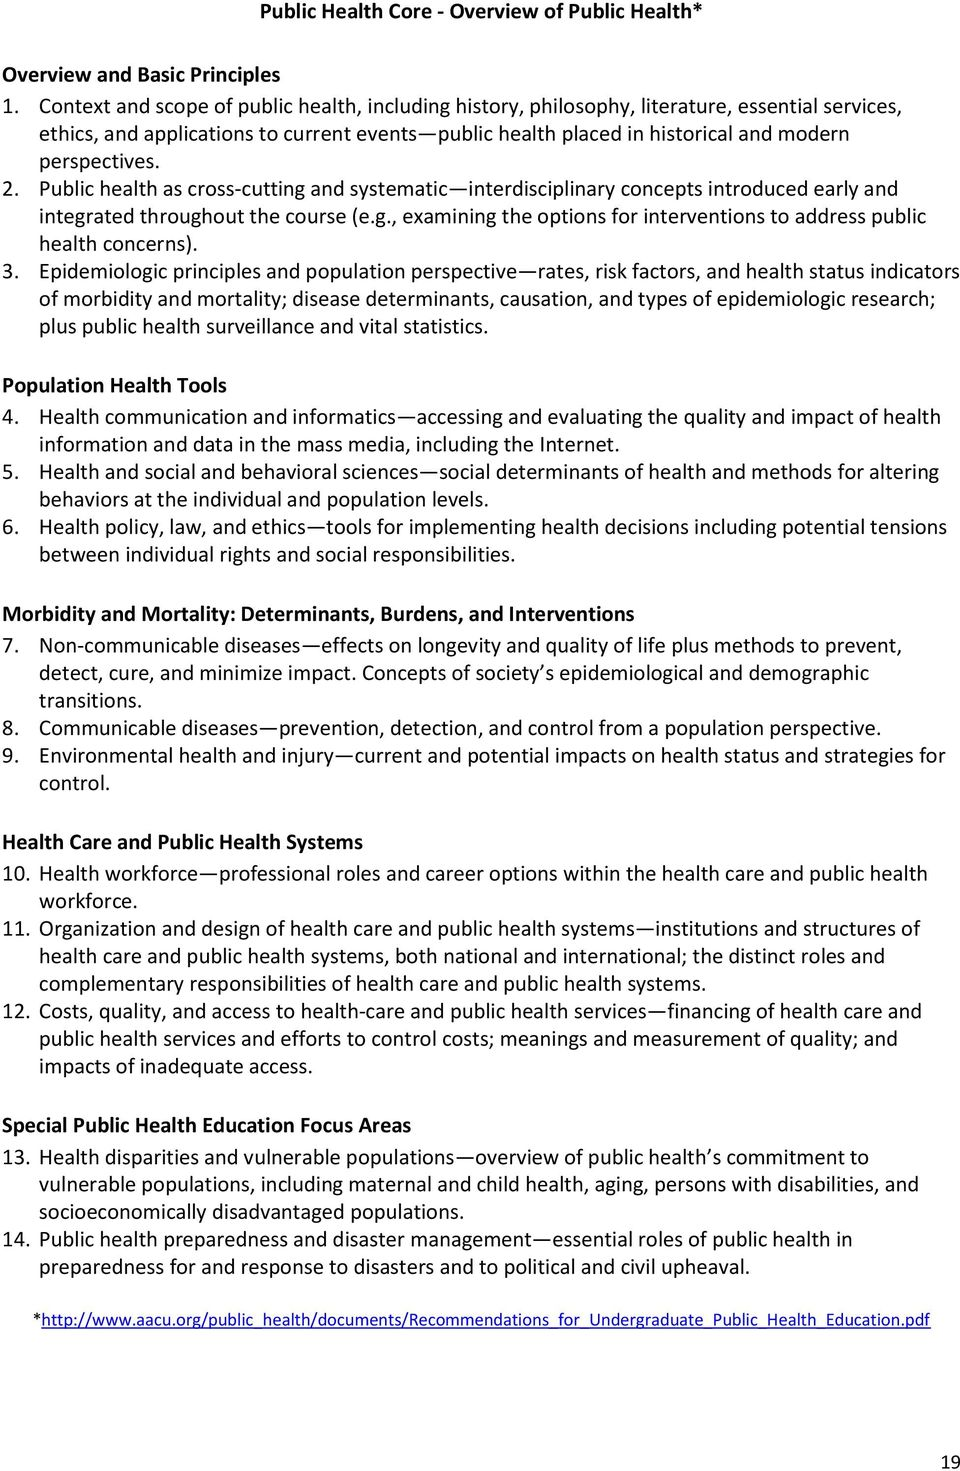 perspectives. 2. Public health as cross-cutting and systematic interdisciplinary concepts introduced early and integrated throughout the course (e.g., examining the options for interventions to address public health concerns).